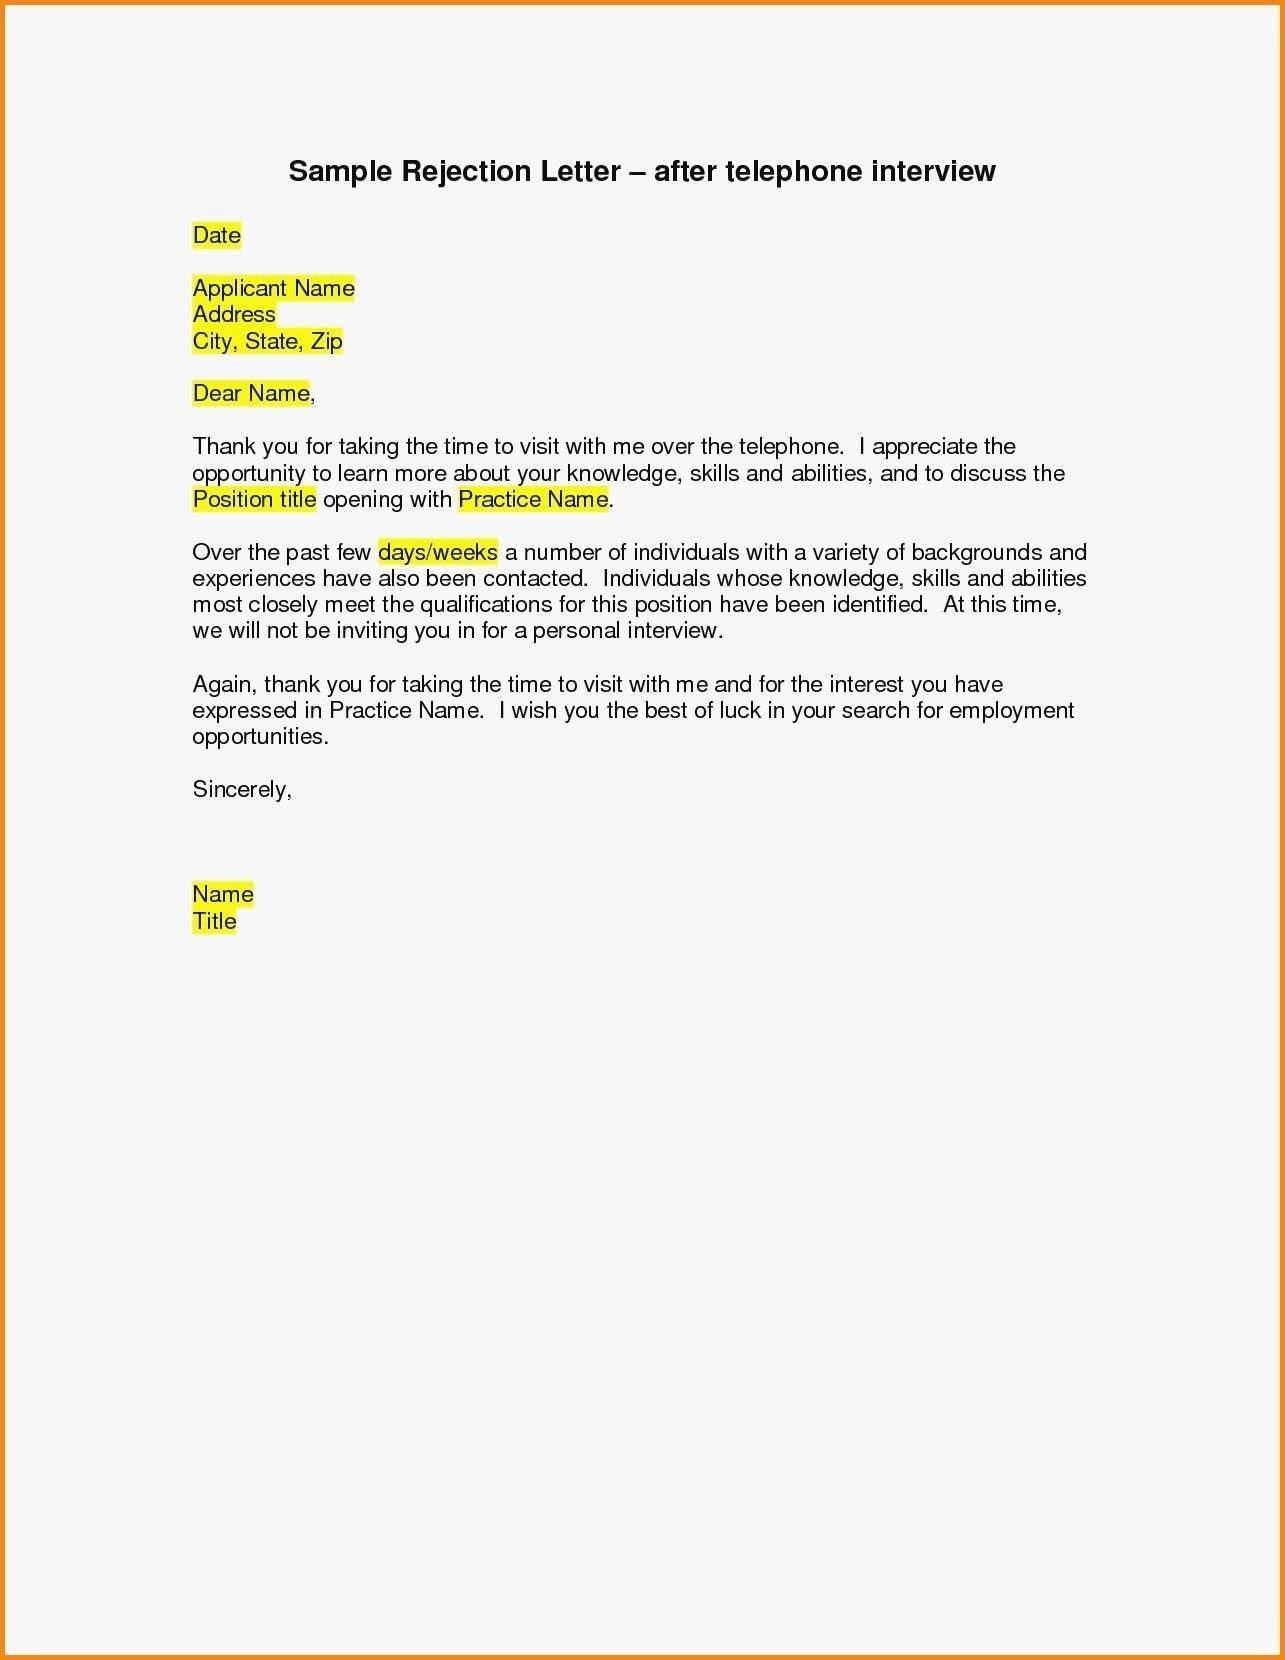 Valid How to Turn Down A Job Interview Sample Letter you